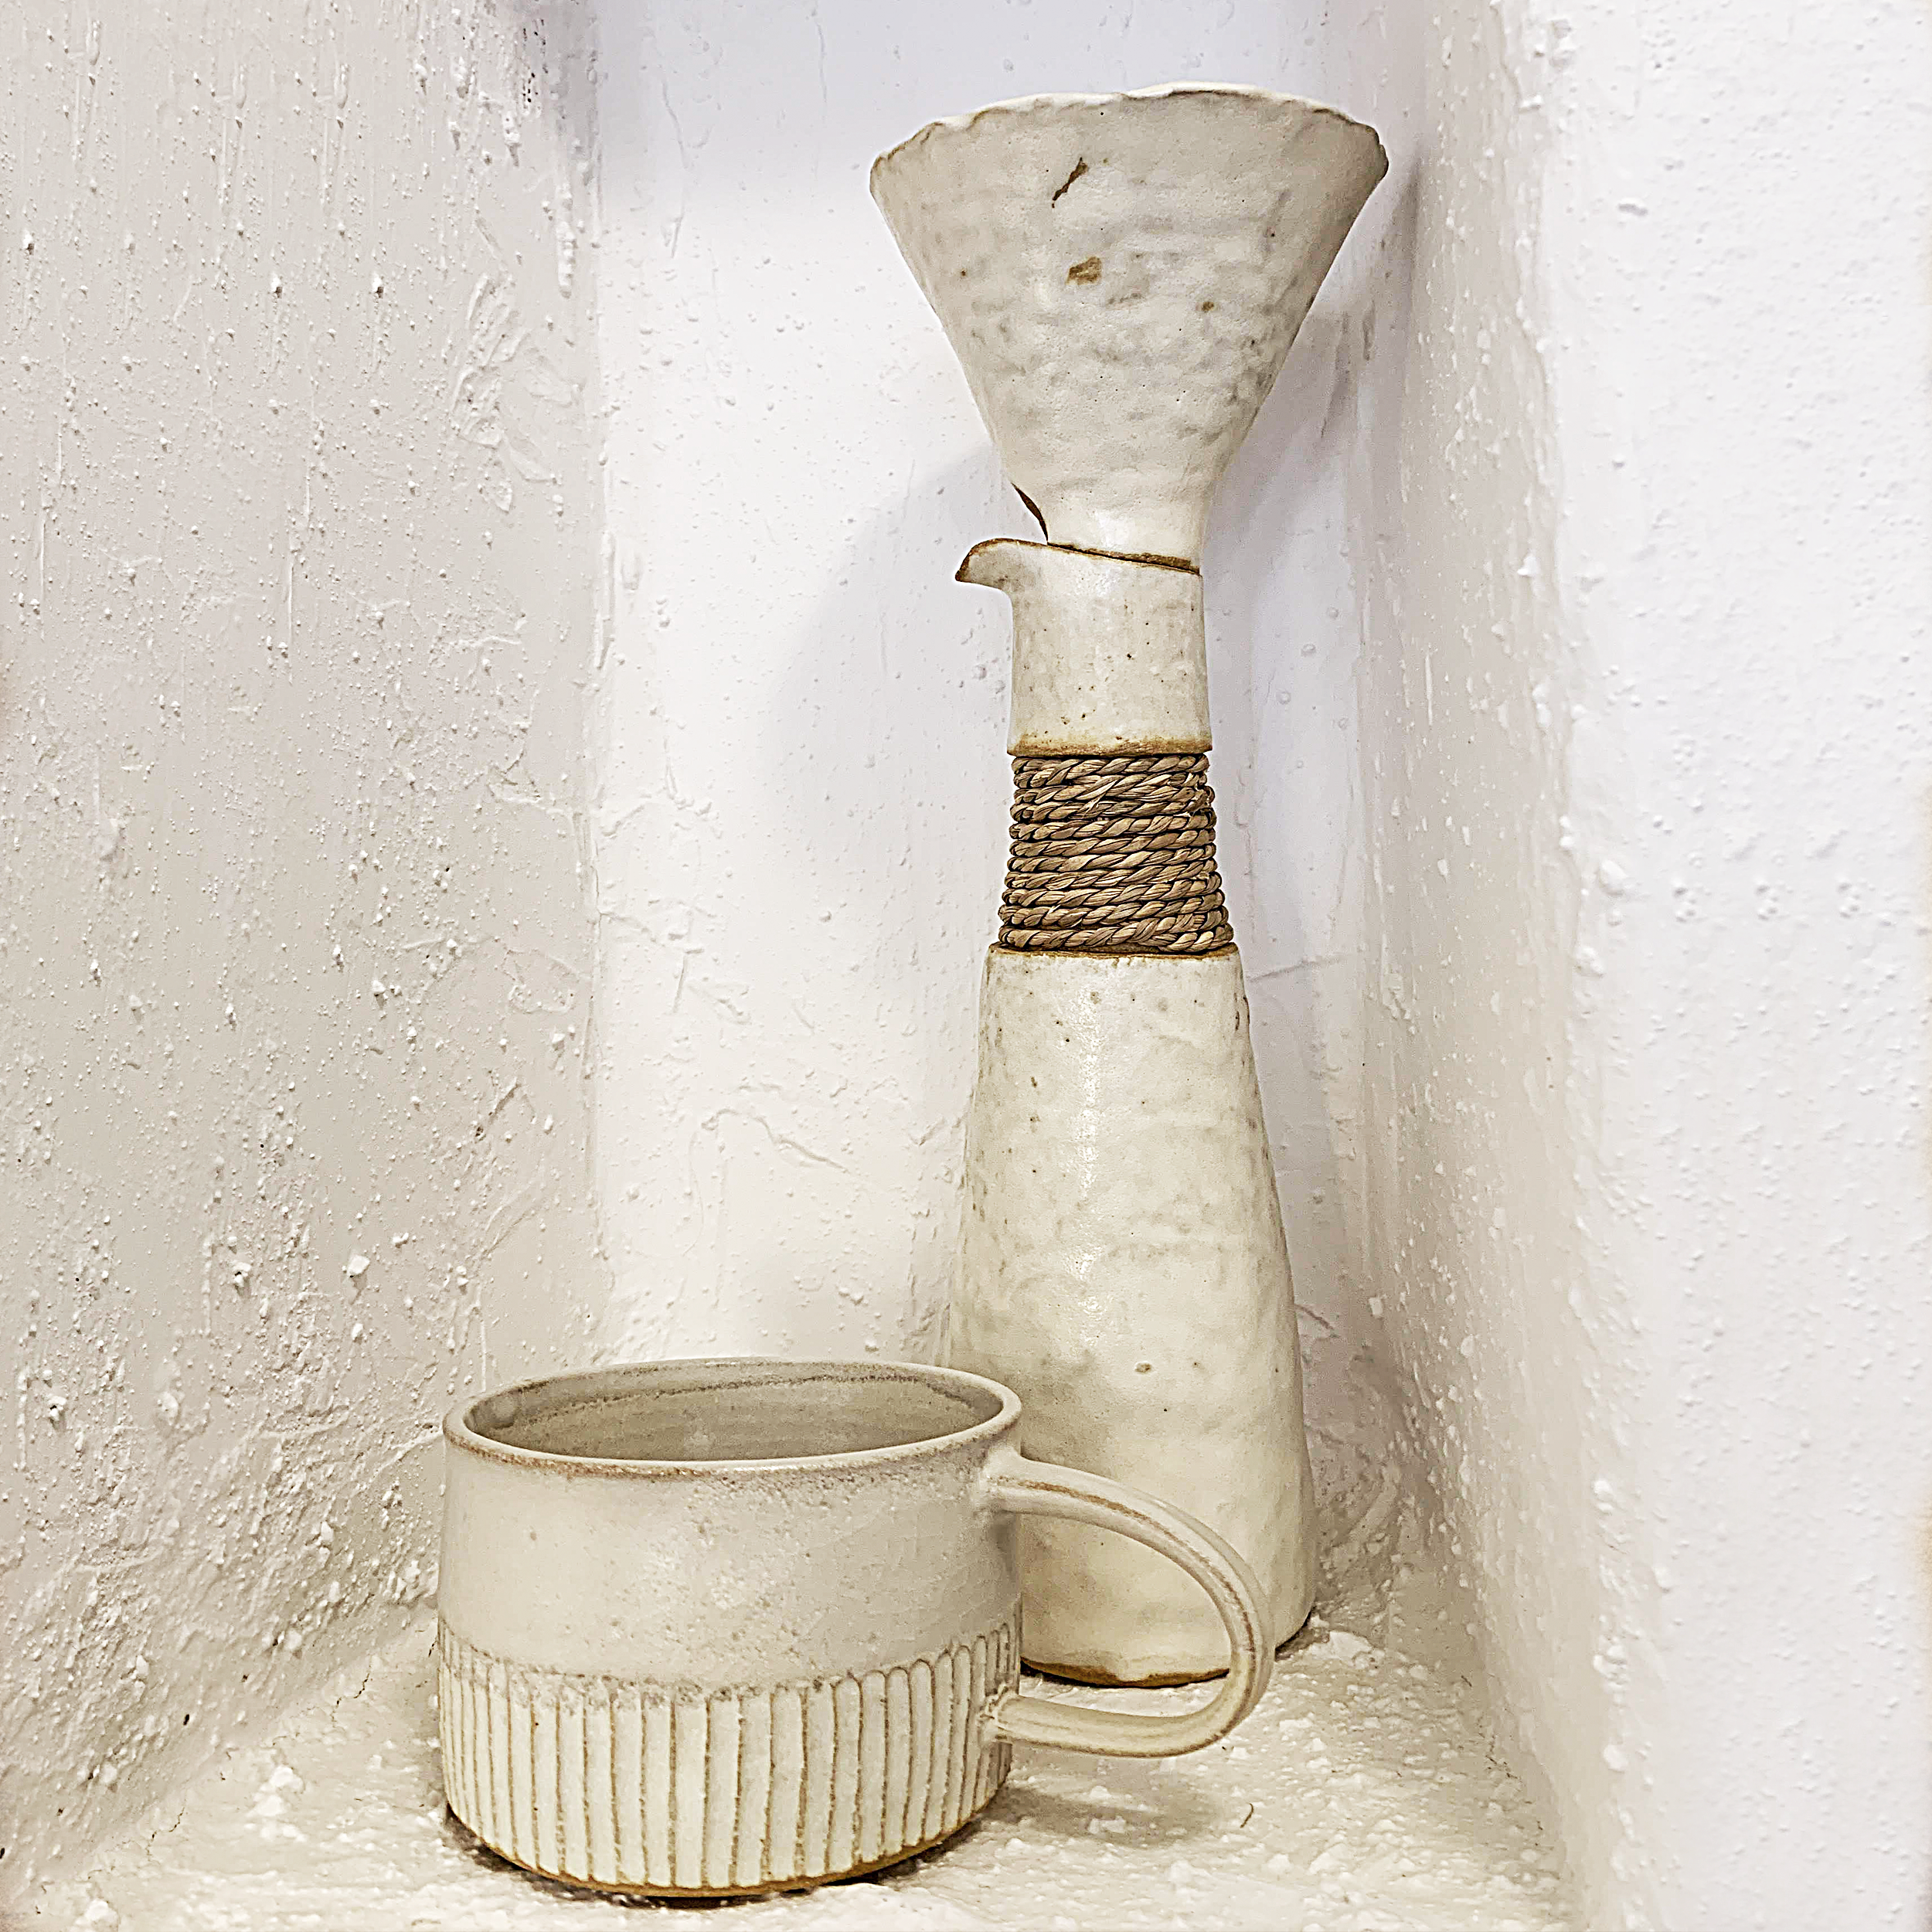 AYAME BULLOCK lIVES AND CREATES HER HANDBUILT CERAMICS ON ORCAS ISLAND, WASHINGTON, using pinch and coil techniques. HER WORK IS INSPIRED BY HER PERSONAL EXPERIENCES, BUT MOST IMPORTANTLY HER JAPANESE HERITAGE AND WORKING SURROUNDED BY THE SERENE RUSTIC BEAUTY OF THE SAN JUAN ISLANDS IN WASHINGTON STATE.